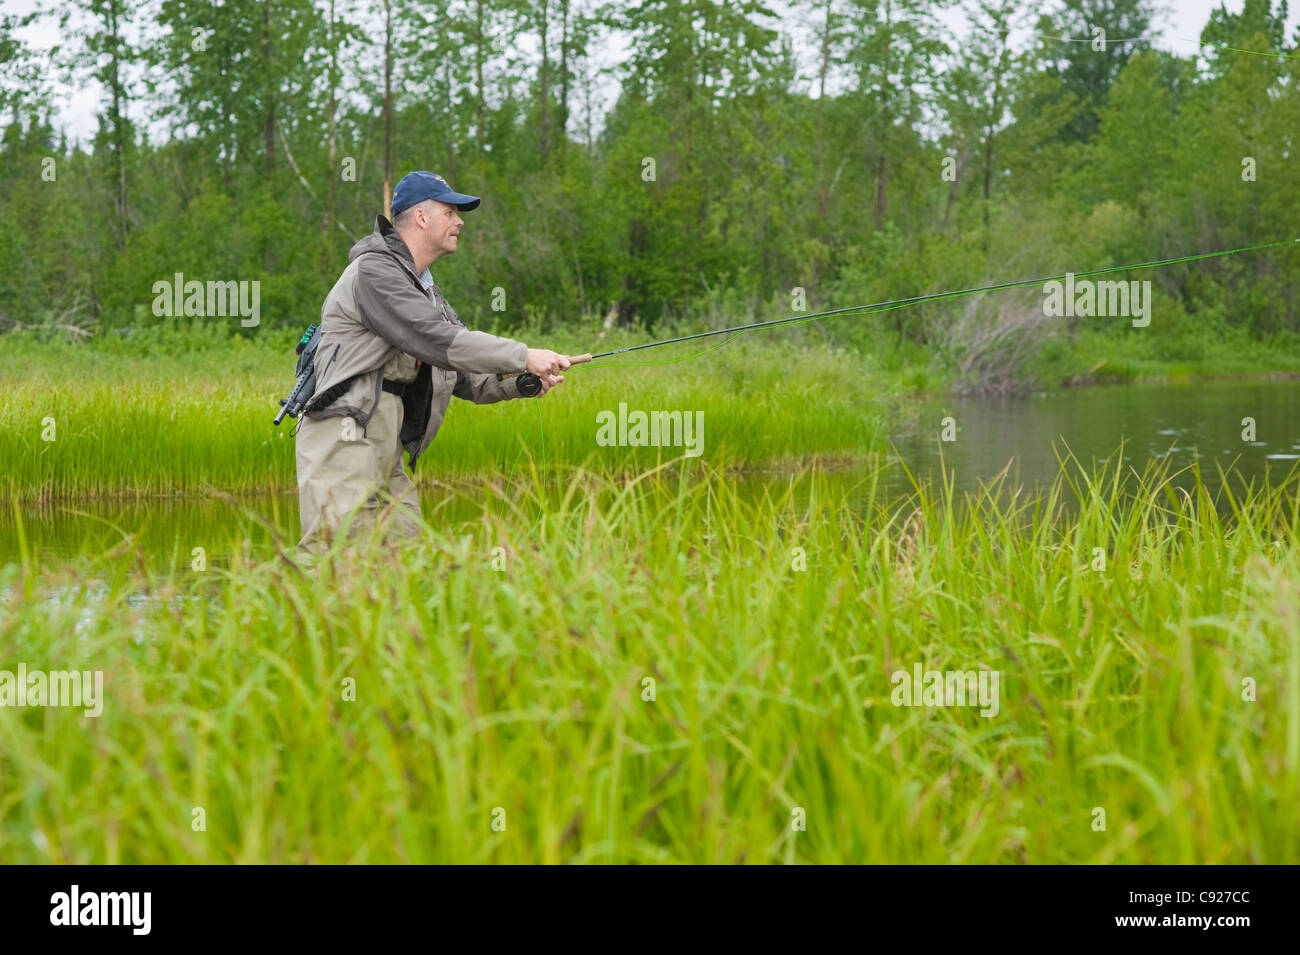 Man fly fishing for King salmon in a backcountry river, Southcentral Alaska, Summer - Stock Image